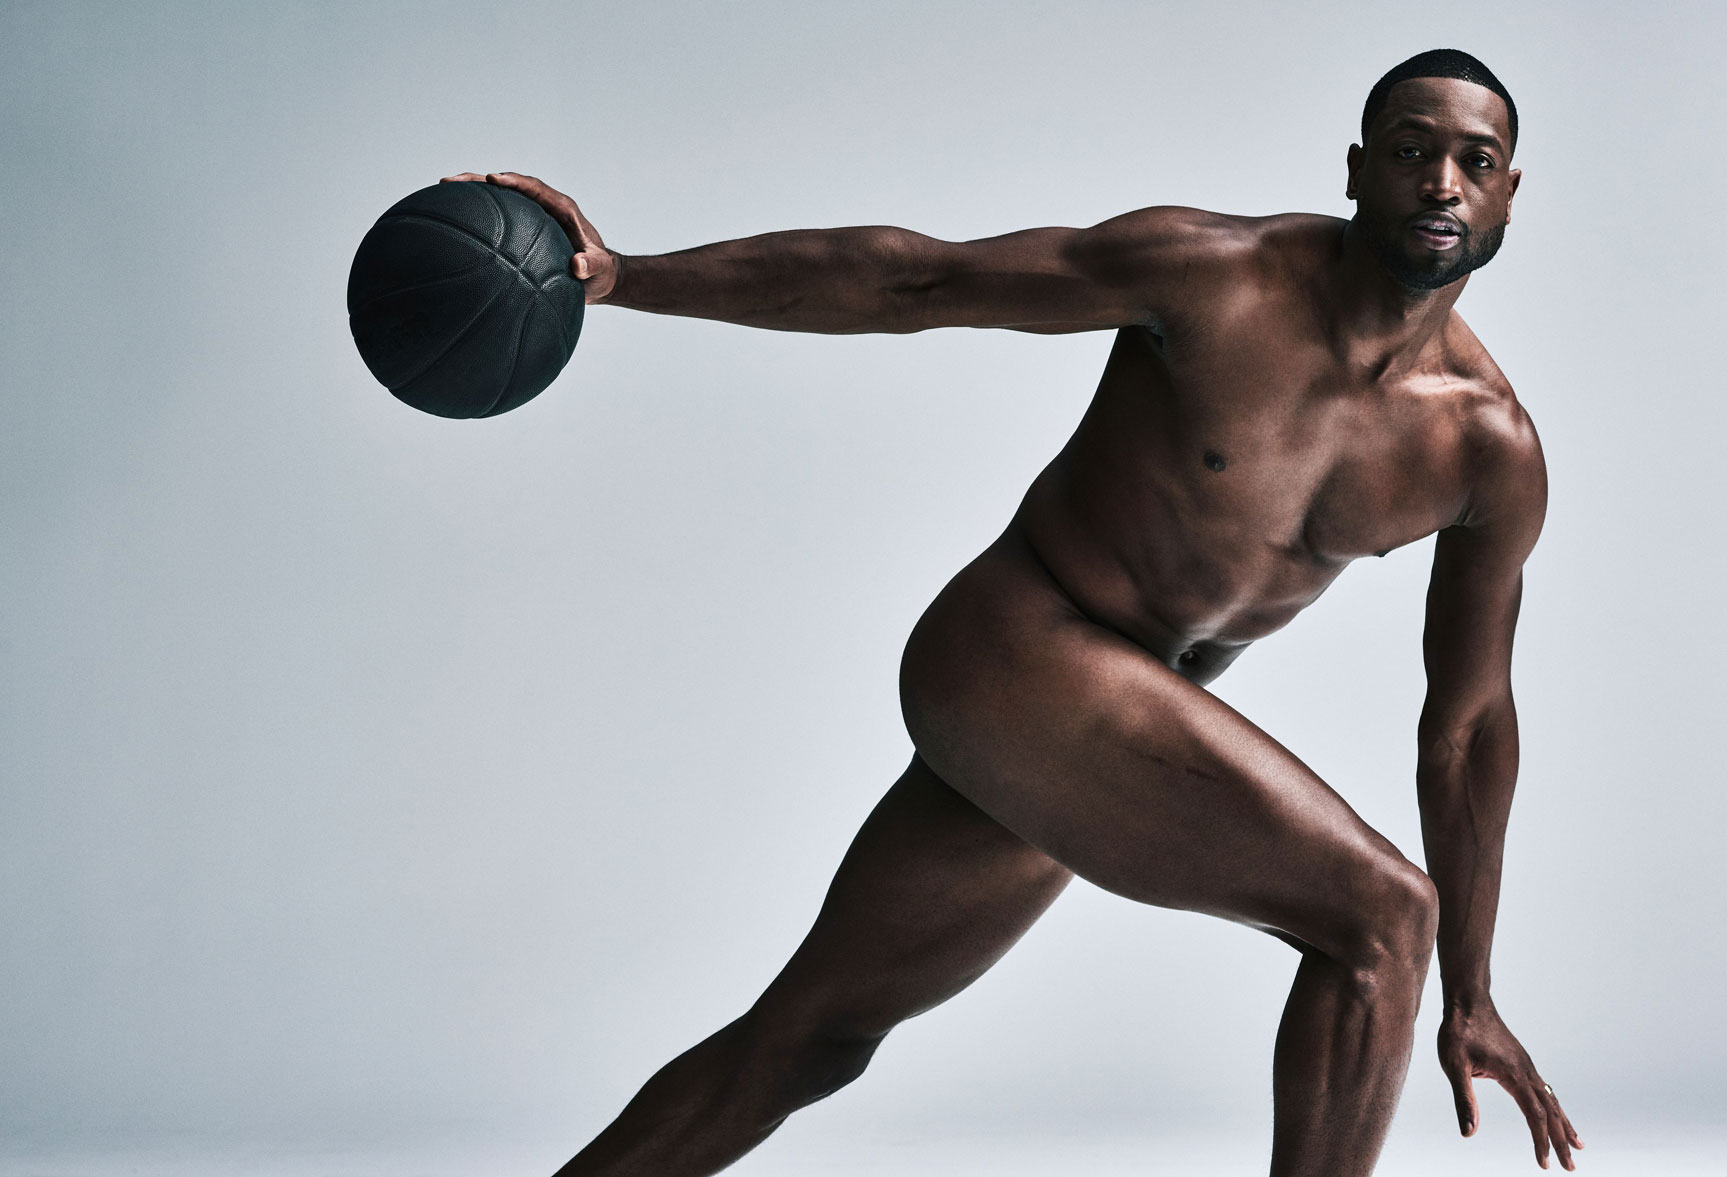 ESPN Magazine The Body Issue 2016 - Dwyane Wade / Дуэйн Уэйд - Культ тела журнала ESPN